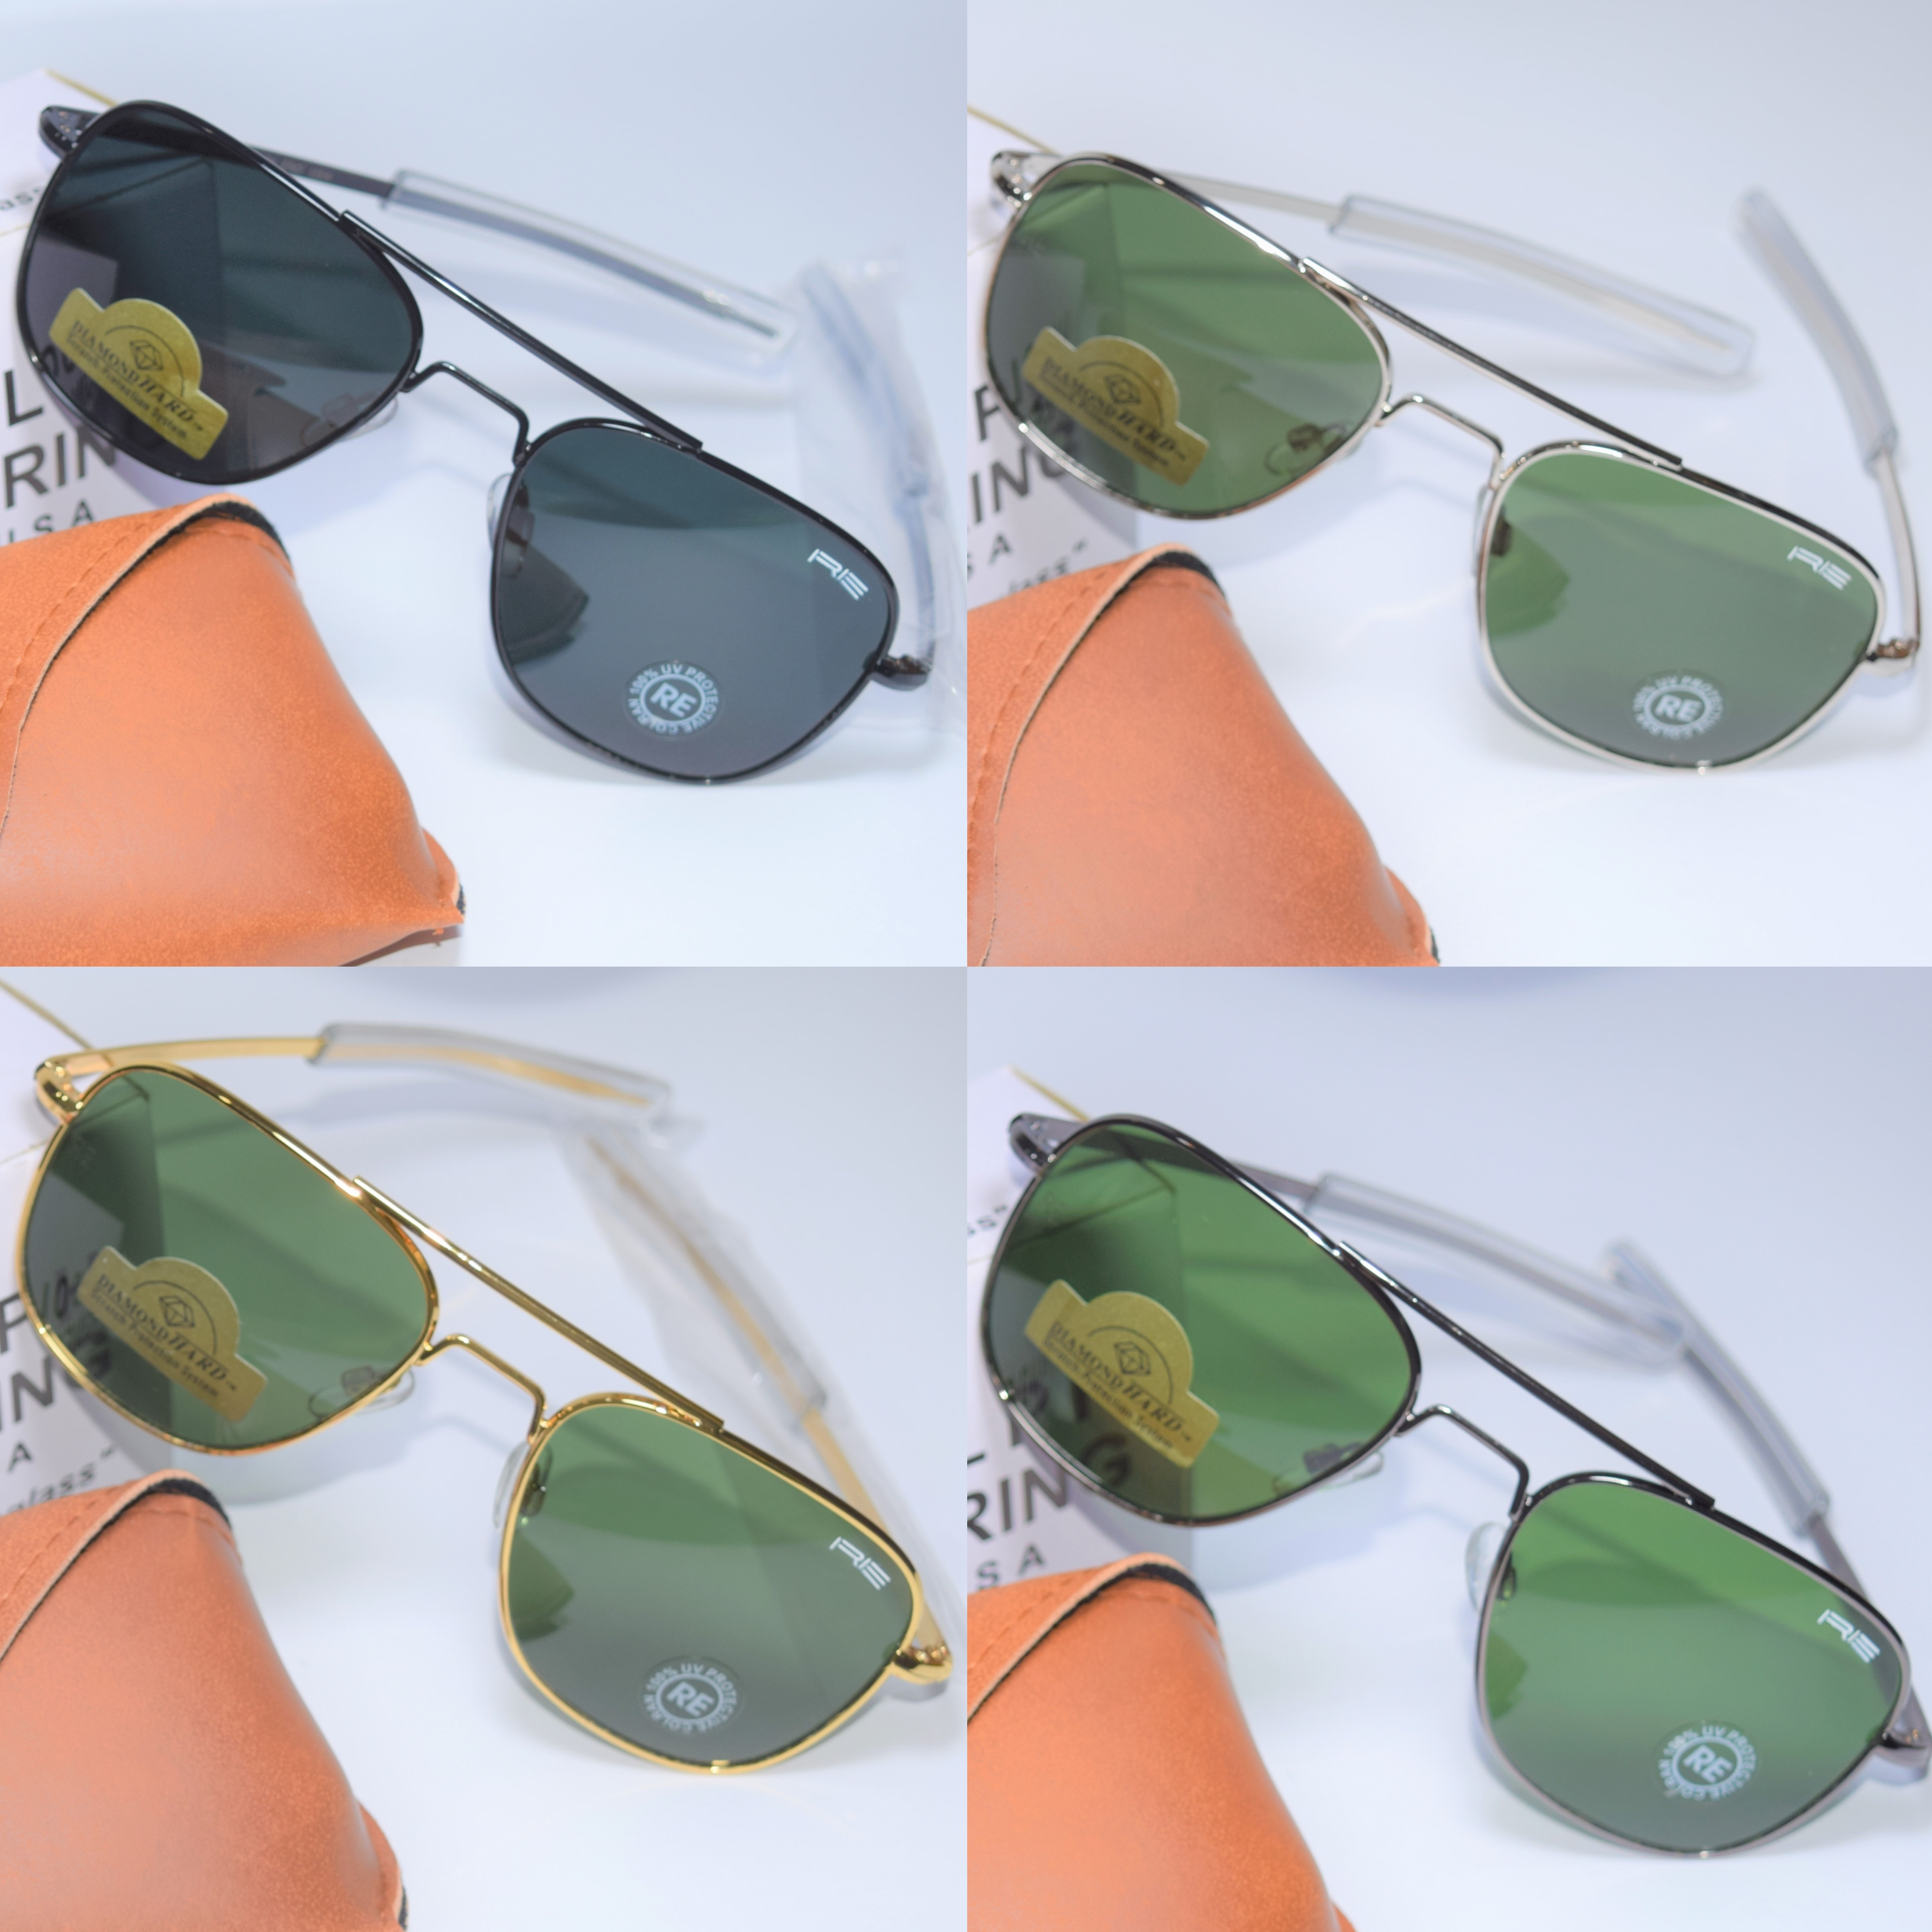 Aviator Sunglasses For Men / Silver, Golden, Black and Gry frame available with Black and Green Sunglasses / Sunglasses for men